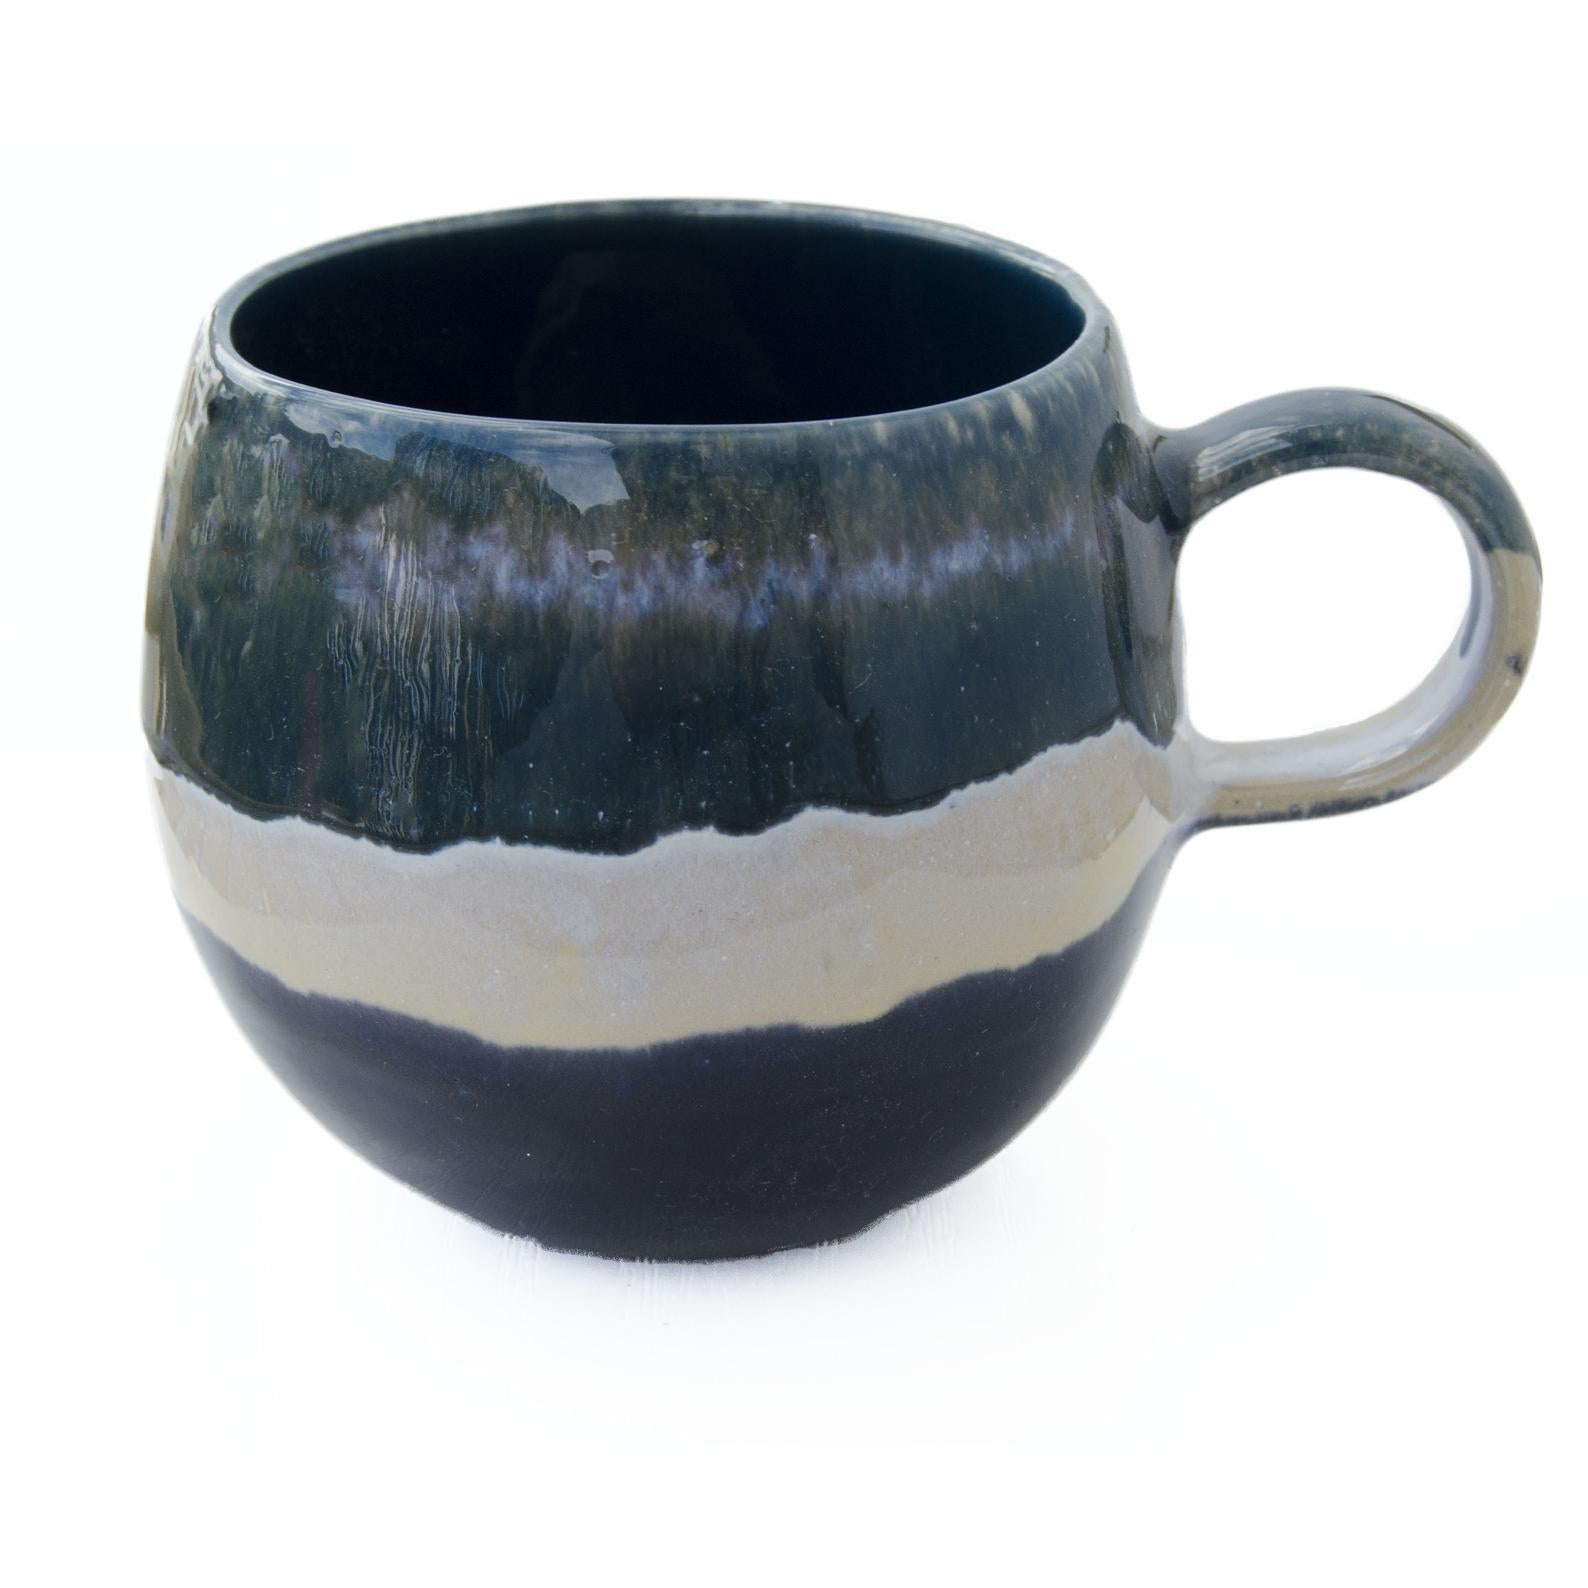 Tonel Dark Green Black and Beige Stoneware Mug